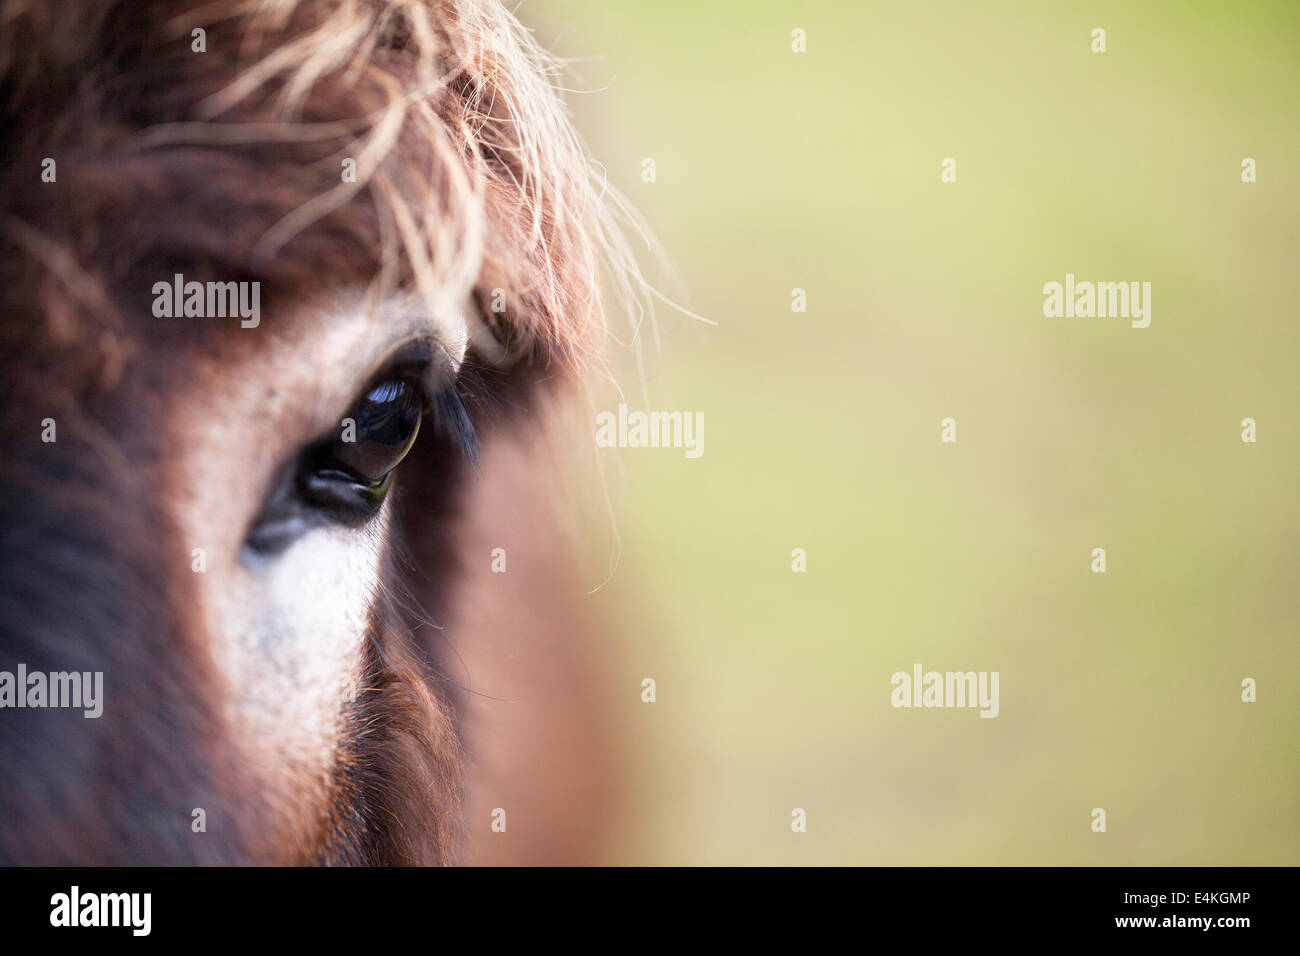 Close up view of a donkey's eye. - Stock Image